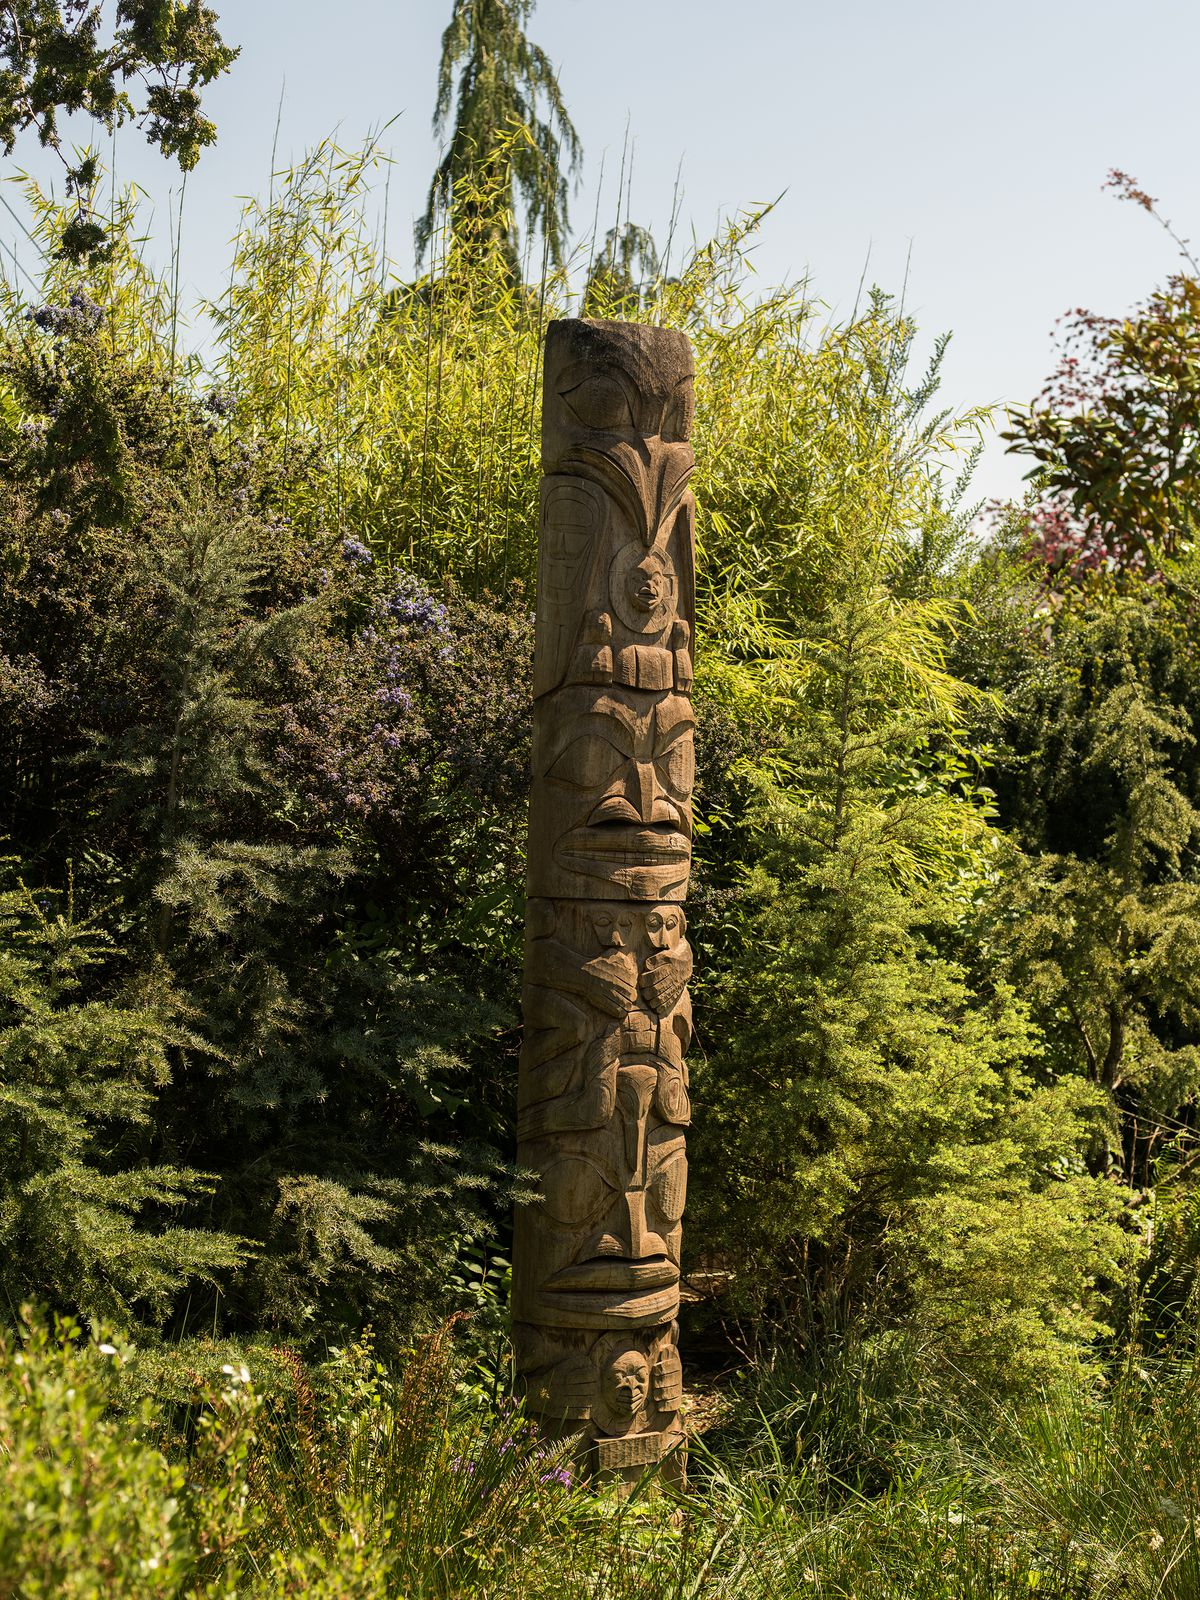 A wooden totem pole in a garden full of lush green trees and bushes.